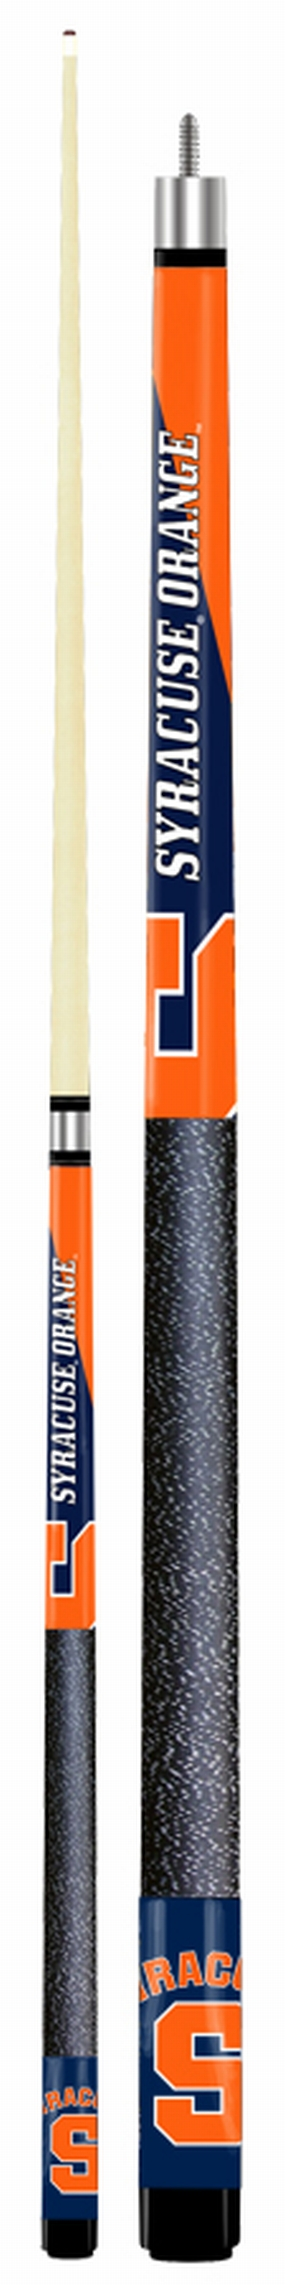 Syracuse University Two-Piece Players Brand Billiard Cue